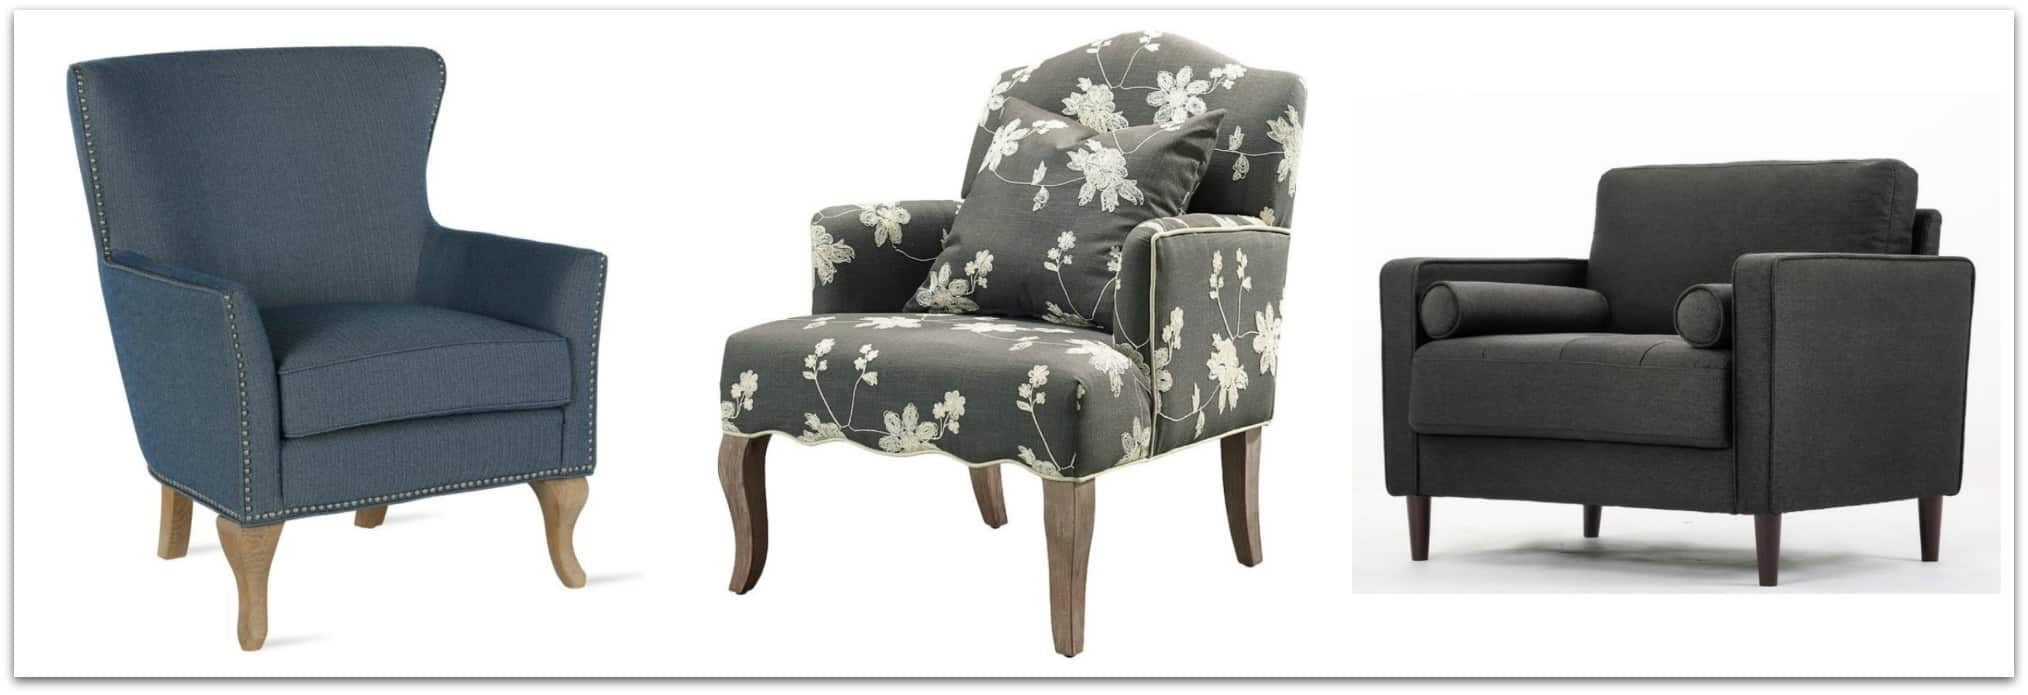 Accent chairs that would look great in a Transitional Style home